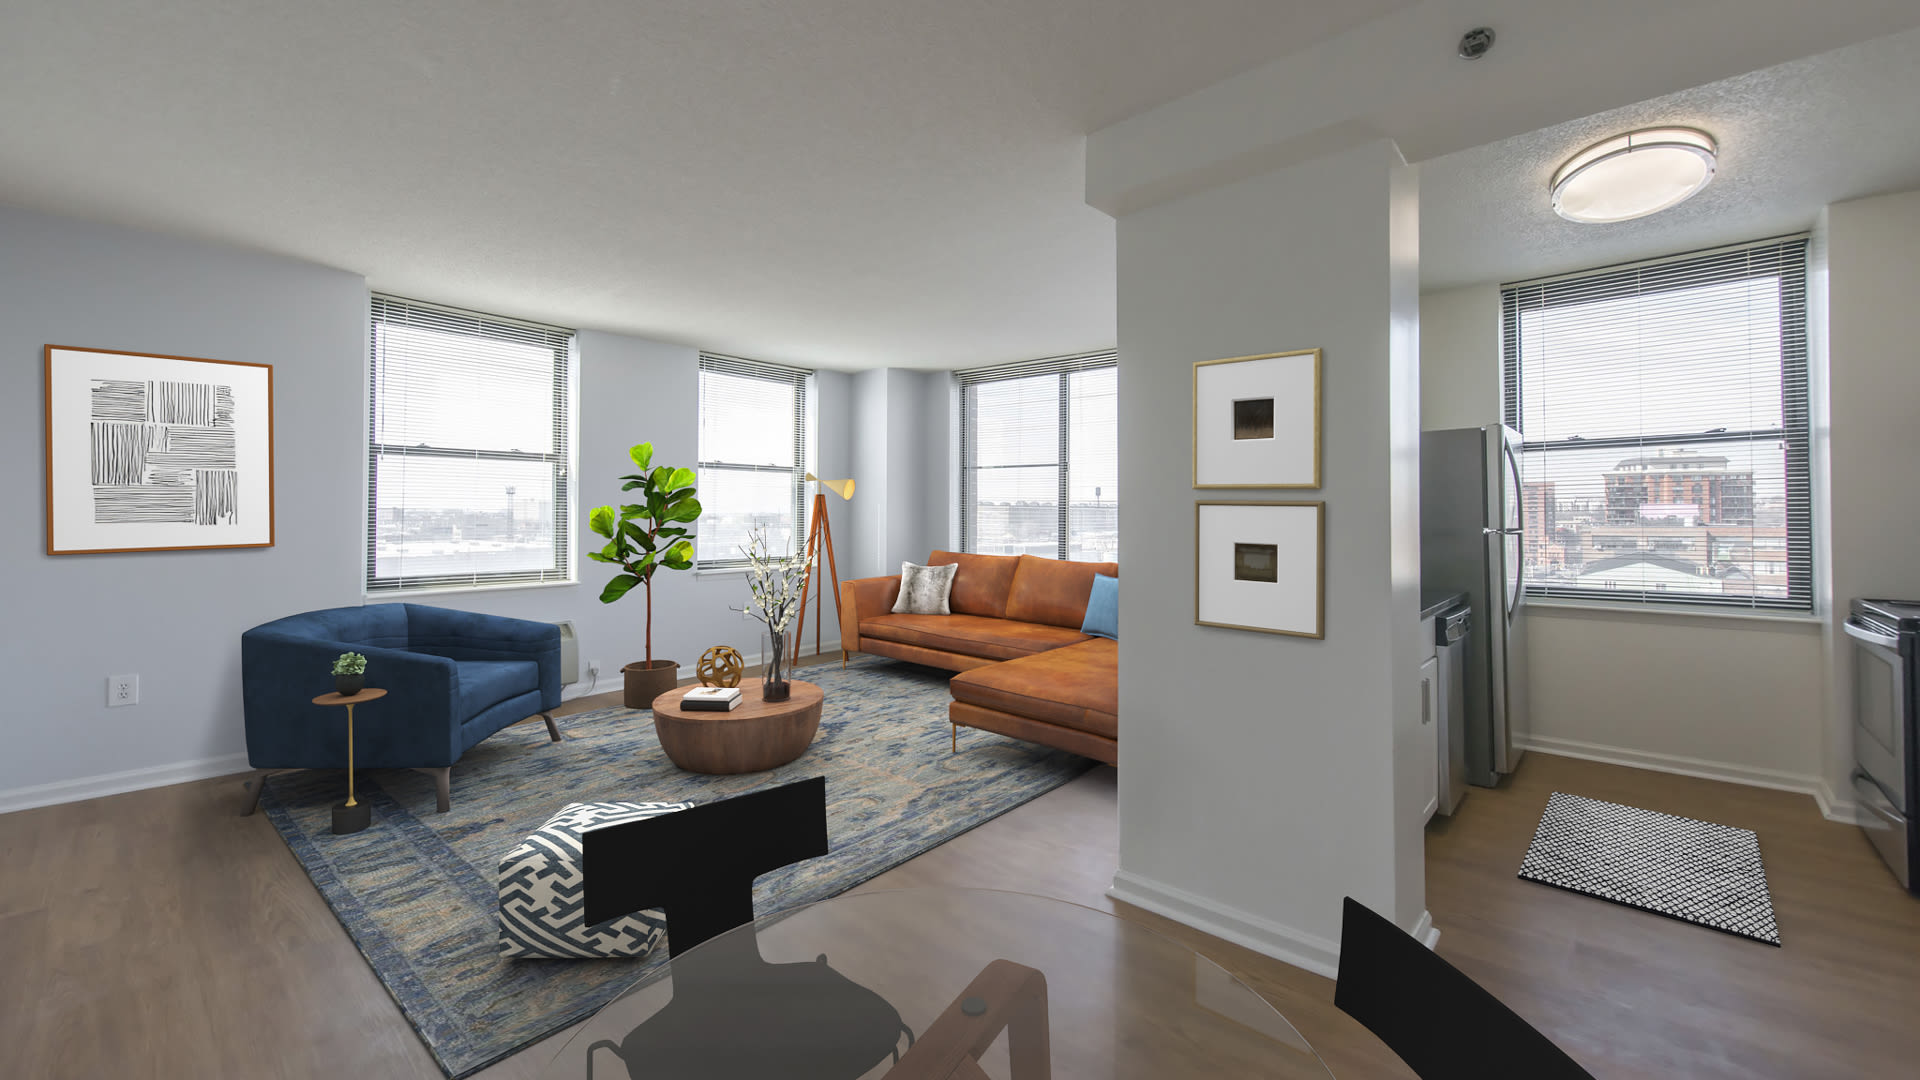 77 Park Avenue Apartments - Pass-through Kitchen and Living Room with Hard Surface Flooring